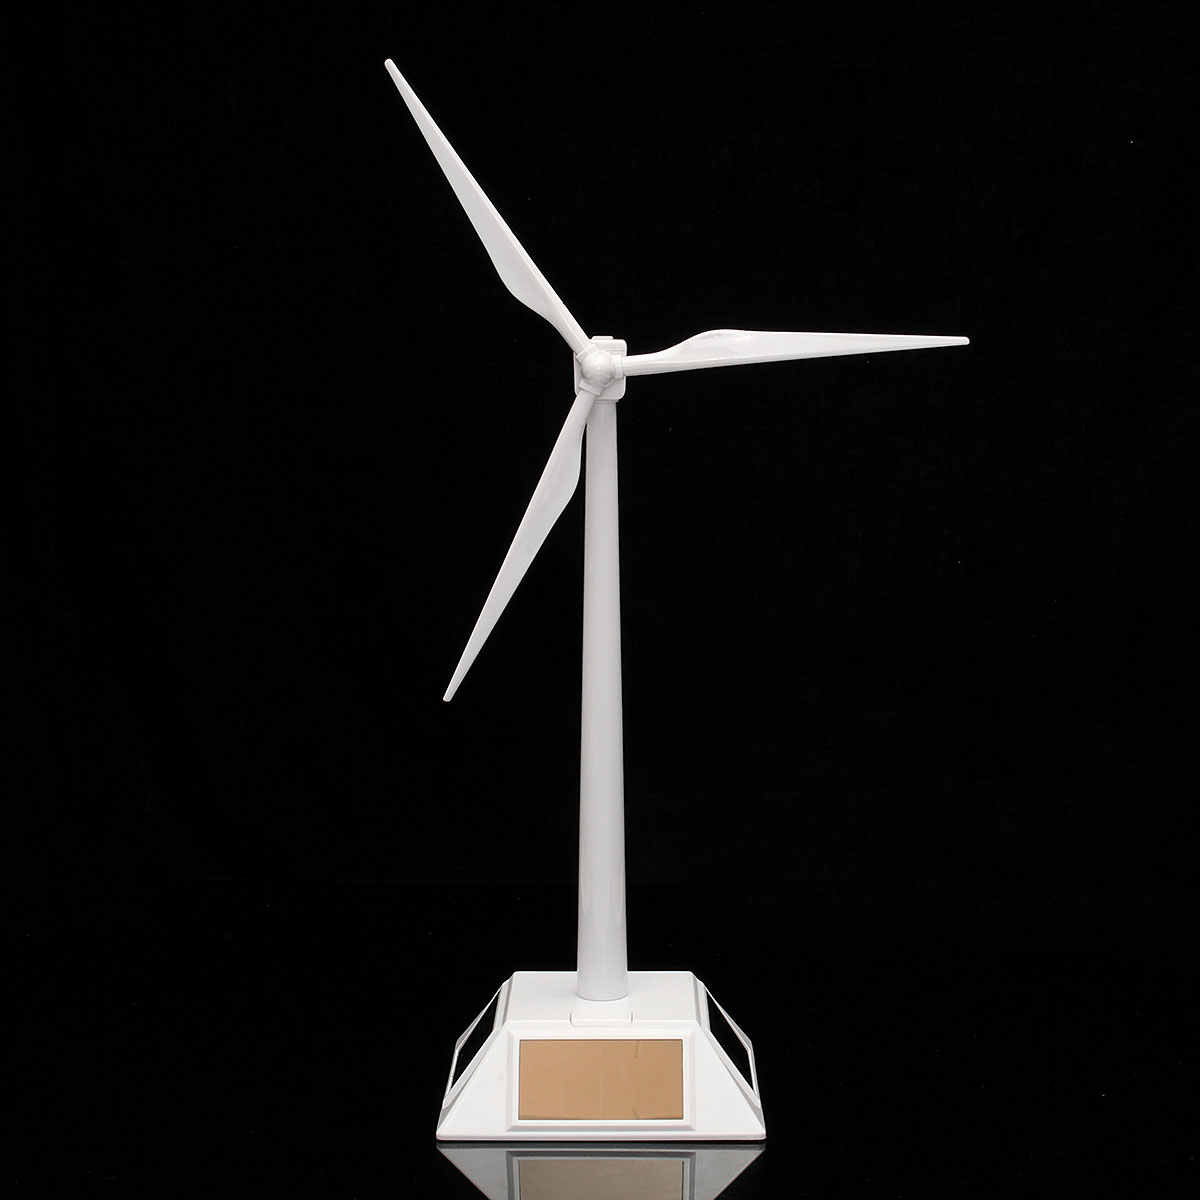 2 in 1 White Solar Wind Generator Model and Exhibition Stand Windmill Educational Assembly Kit Desktop Decoration Plastics